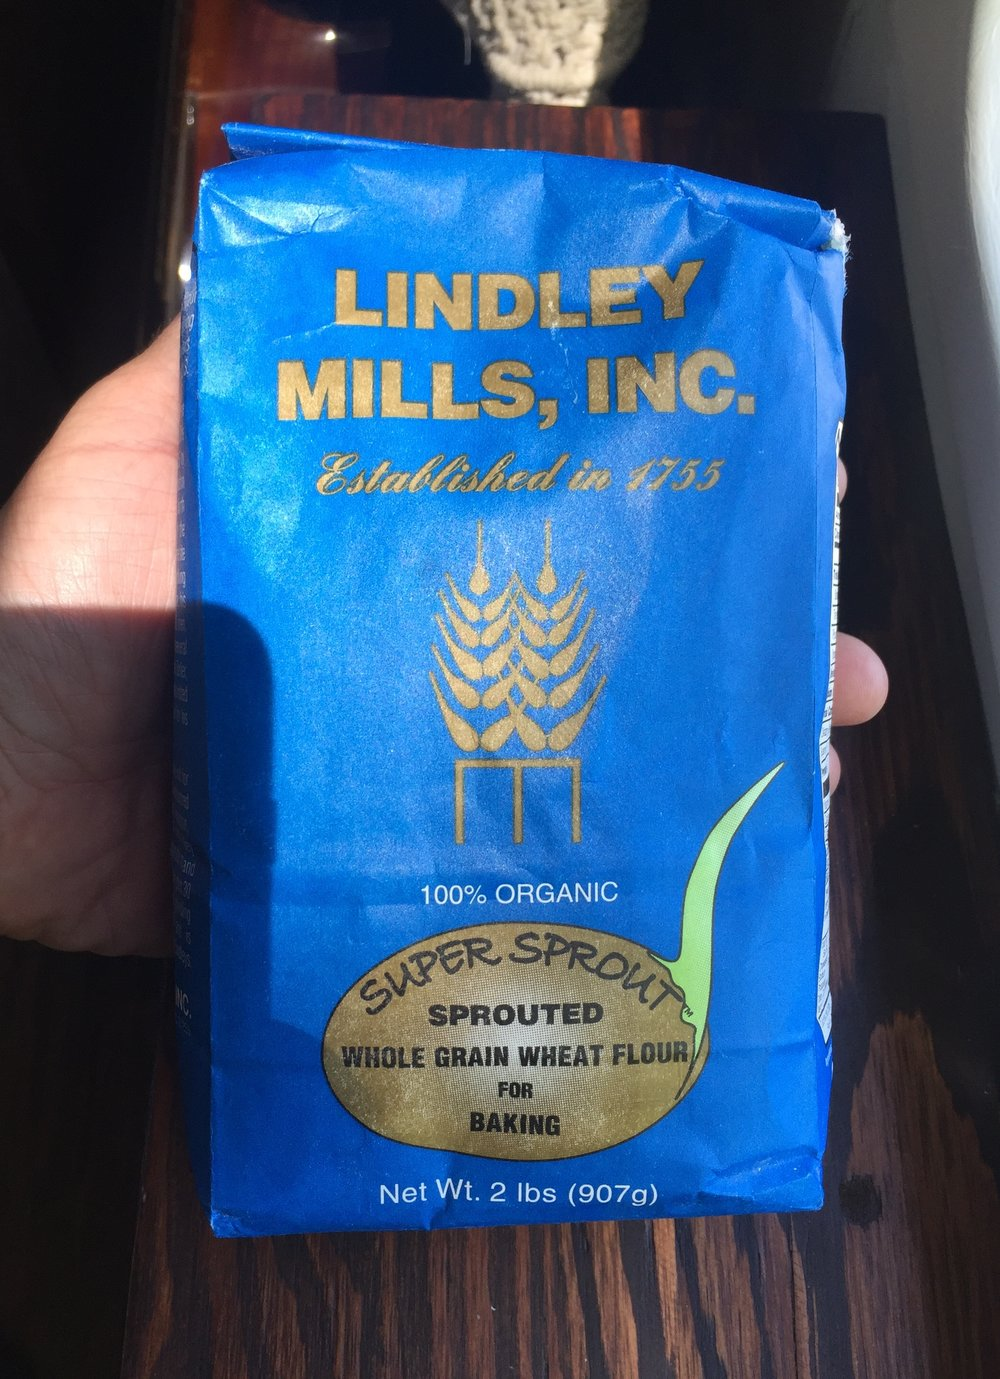 Sprouted Whole Wheat Flour from Lindley Mills, which has been in the USA before it was called the USA, 1755, and still run by the Lindley family, some 9 generations later.